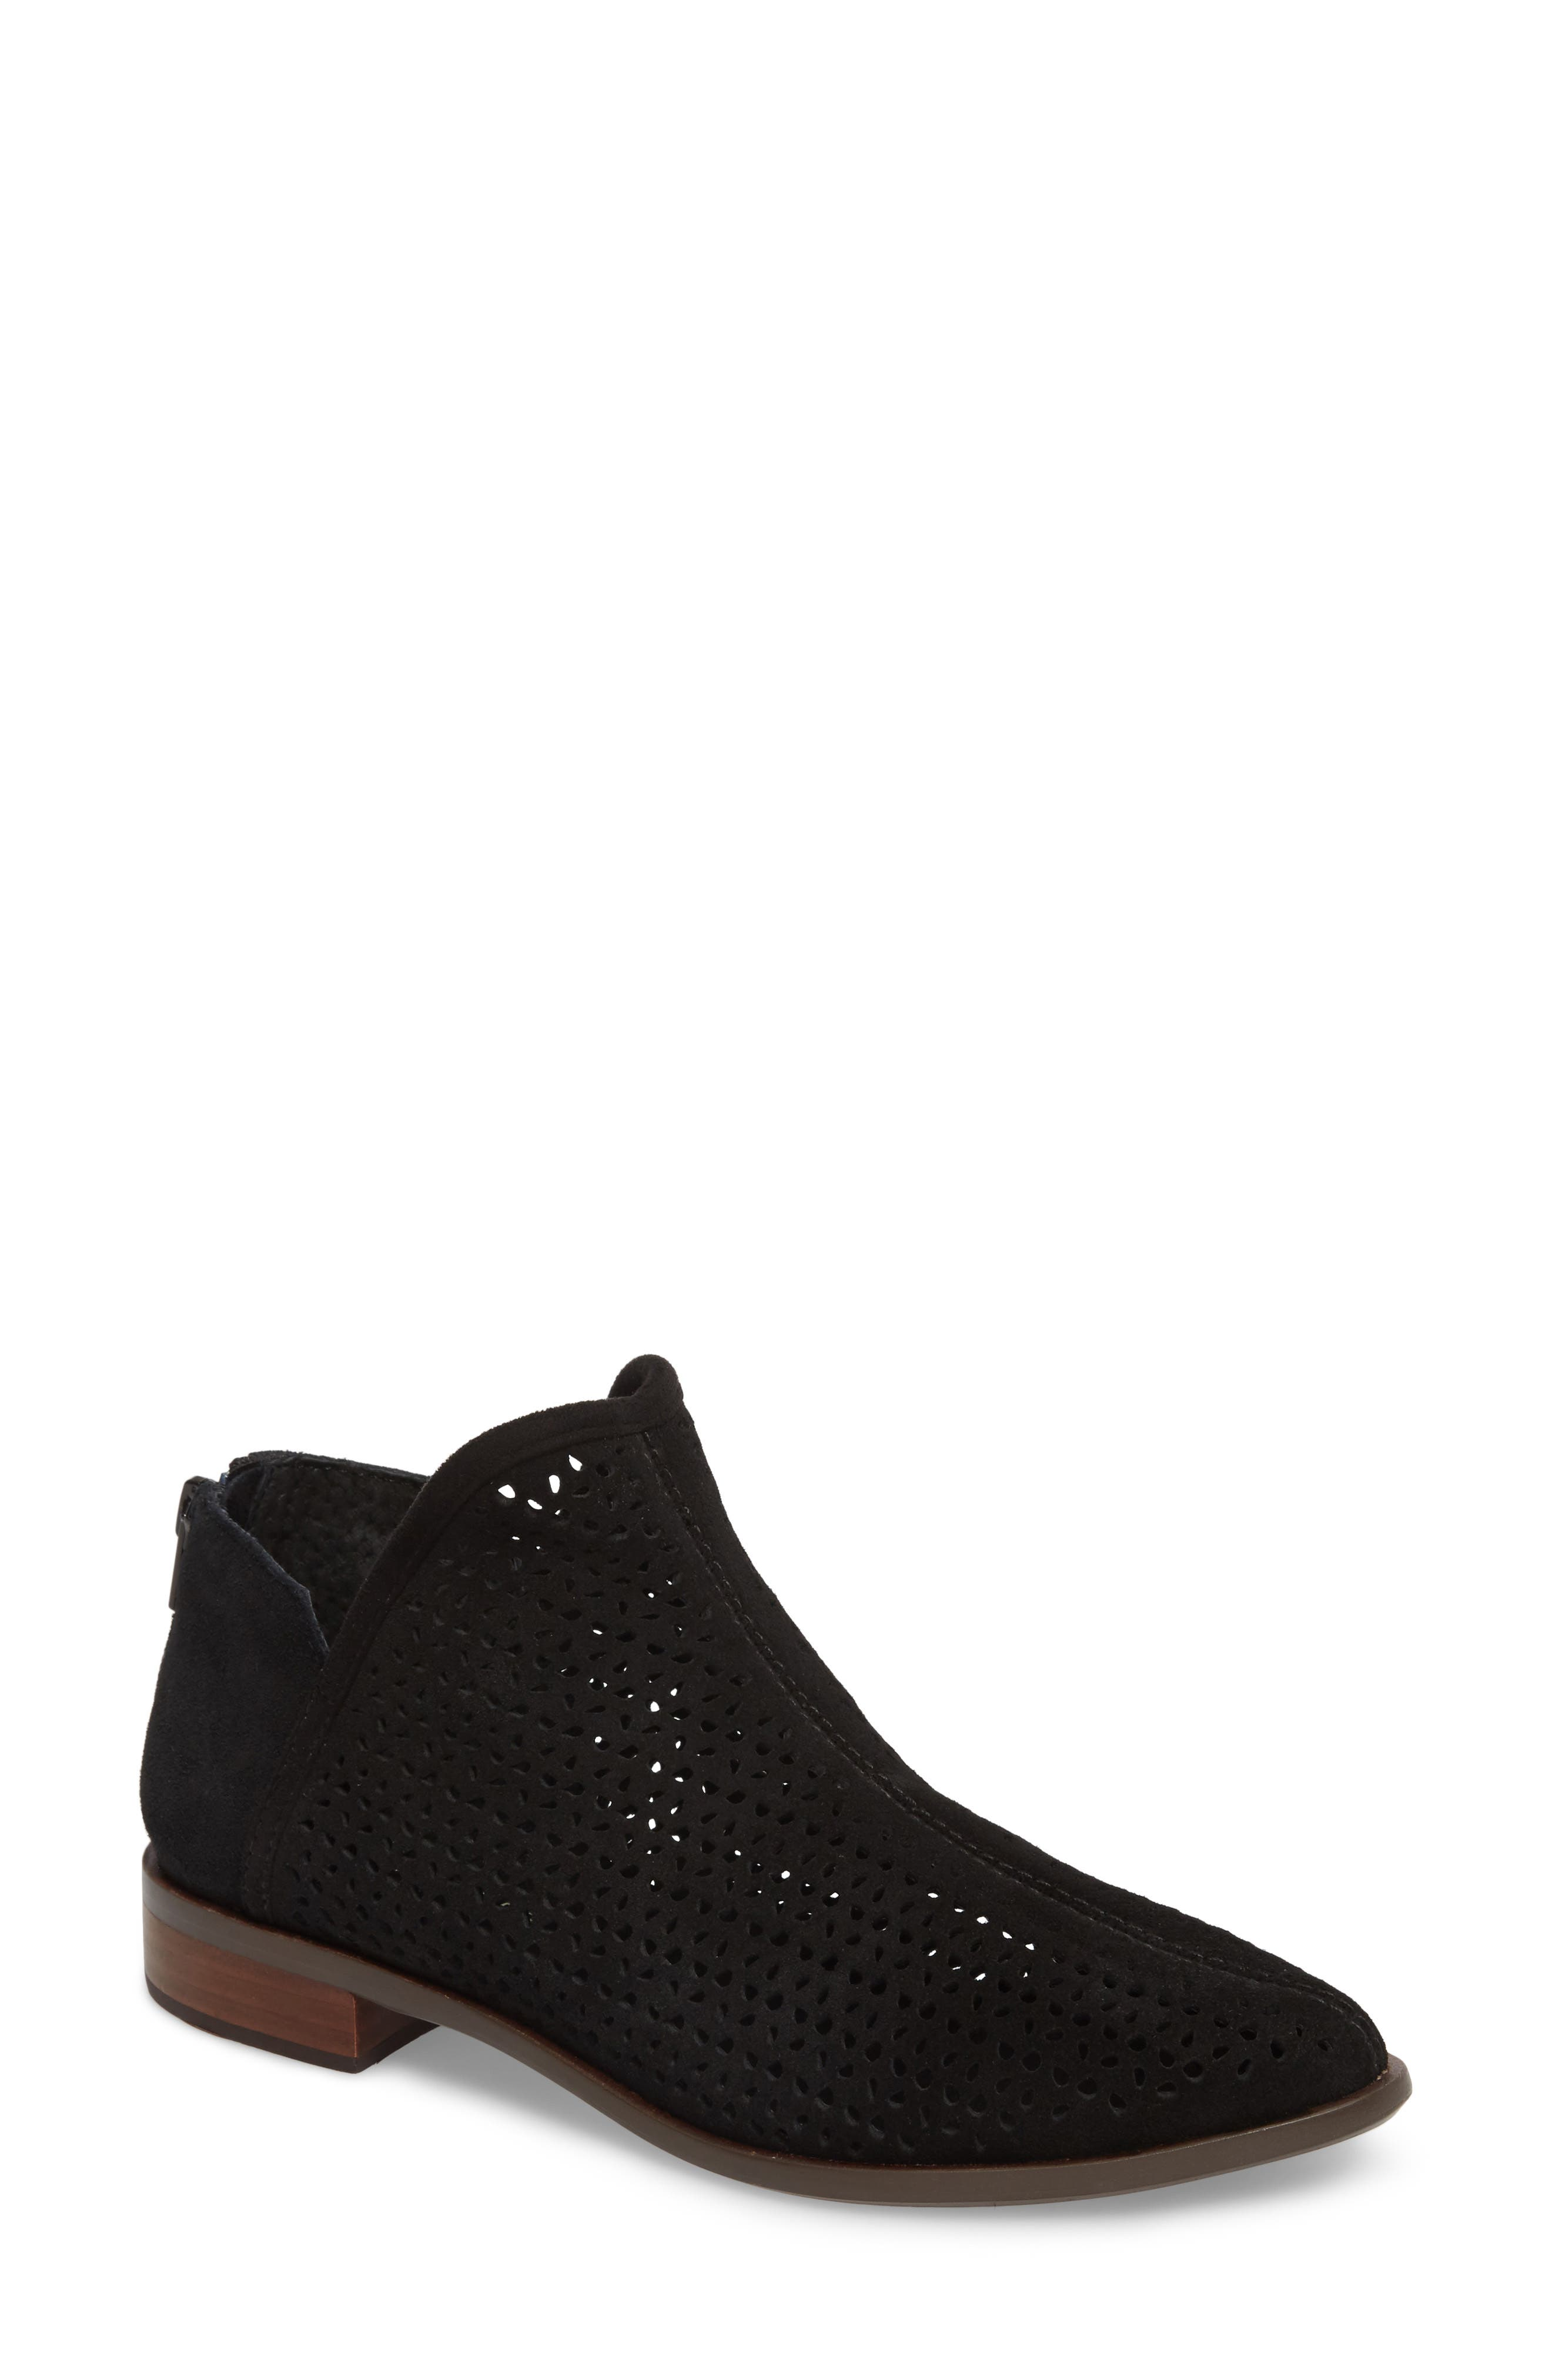 Kelsi Dagger Brooklyn Alley Perforated Bootie- Black